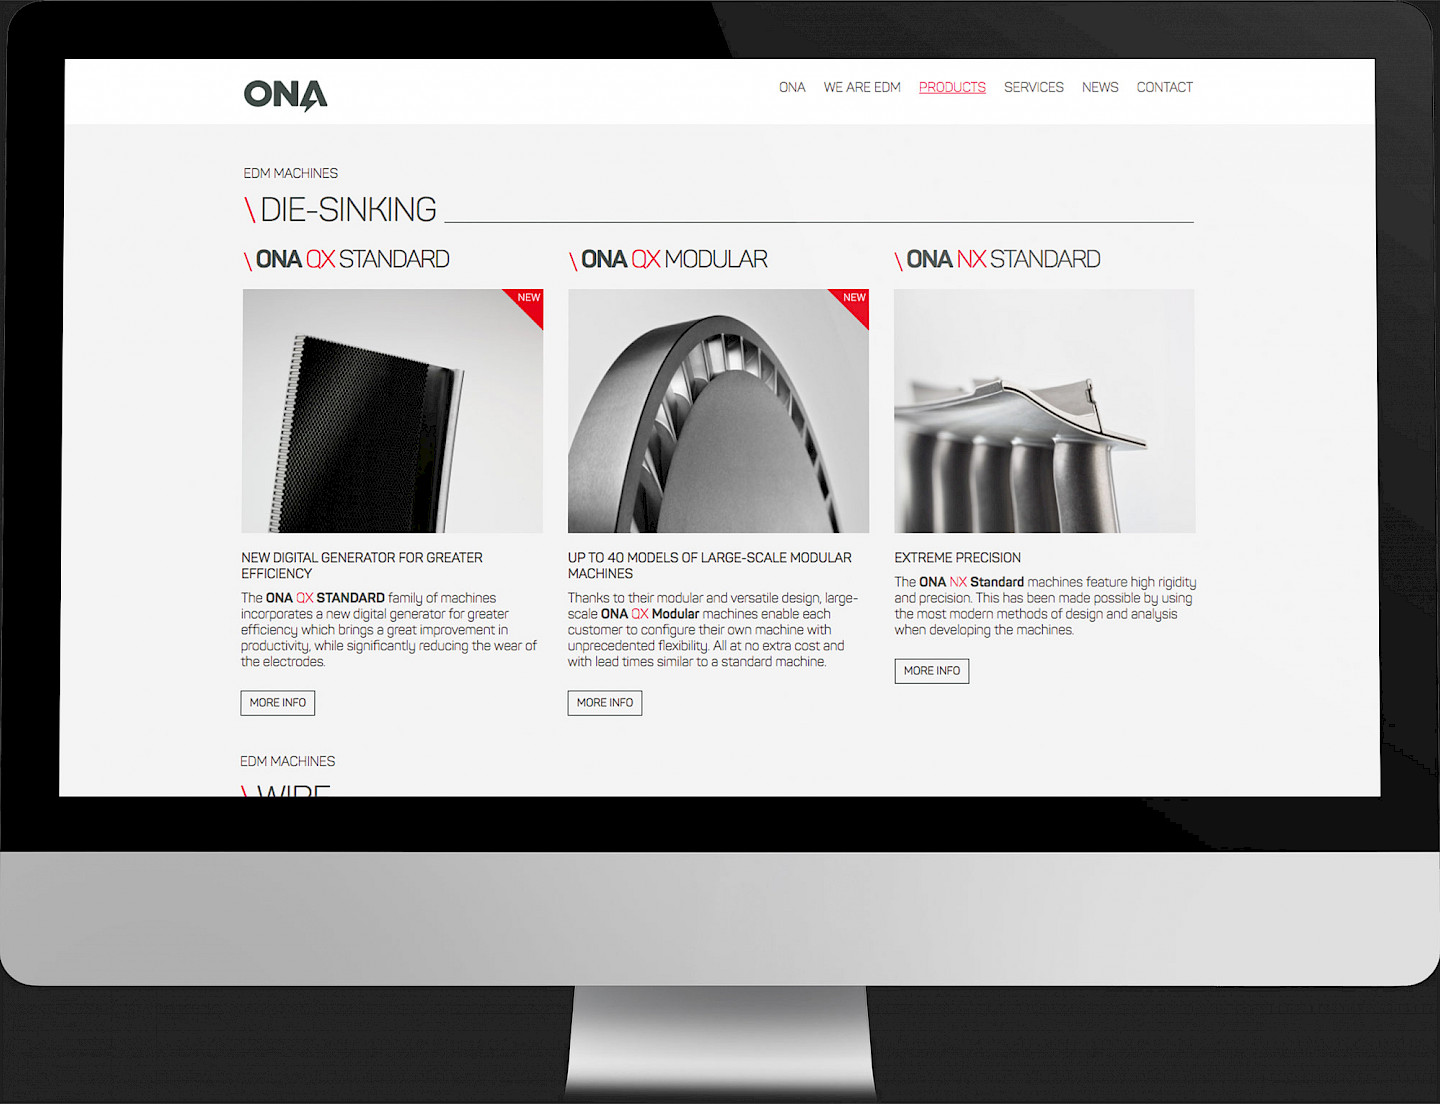 branding technology ona 03 spaces website design digital move narrative